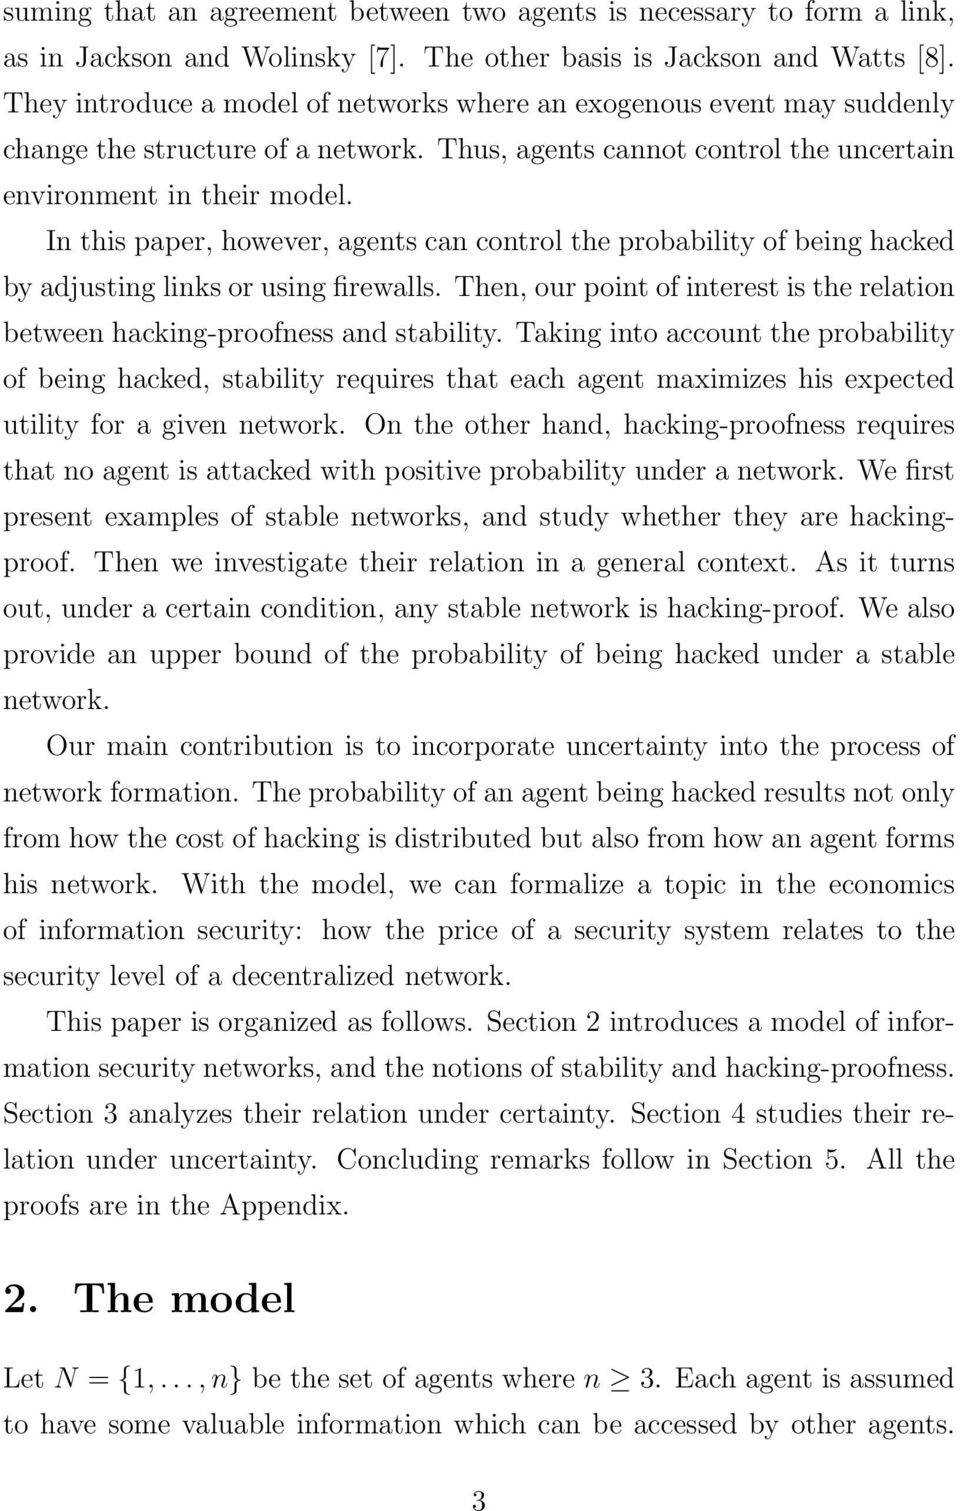 In this paper, however, agents can control the probability of being hacked by adjusting links or using firewalls. Then, our point of interest is the relation between hacking-proofness and stability.